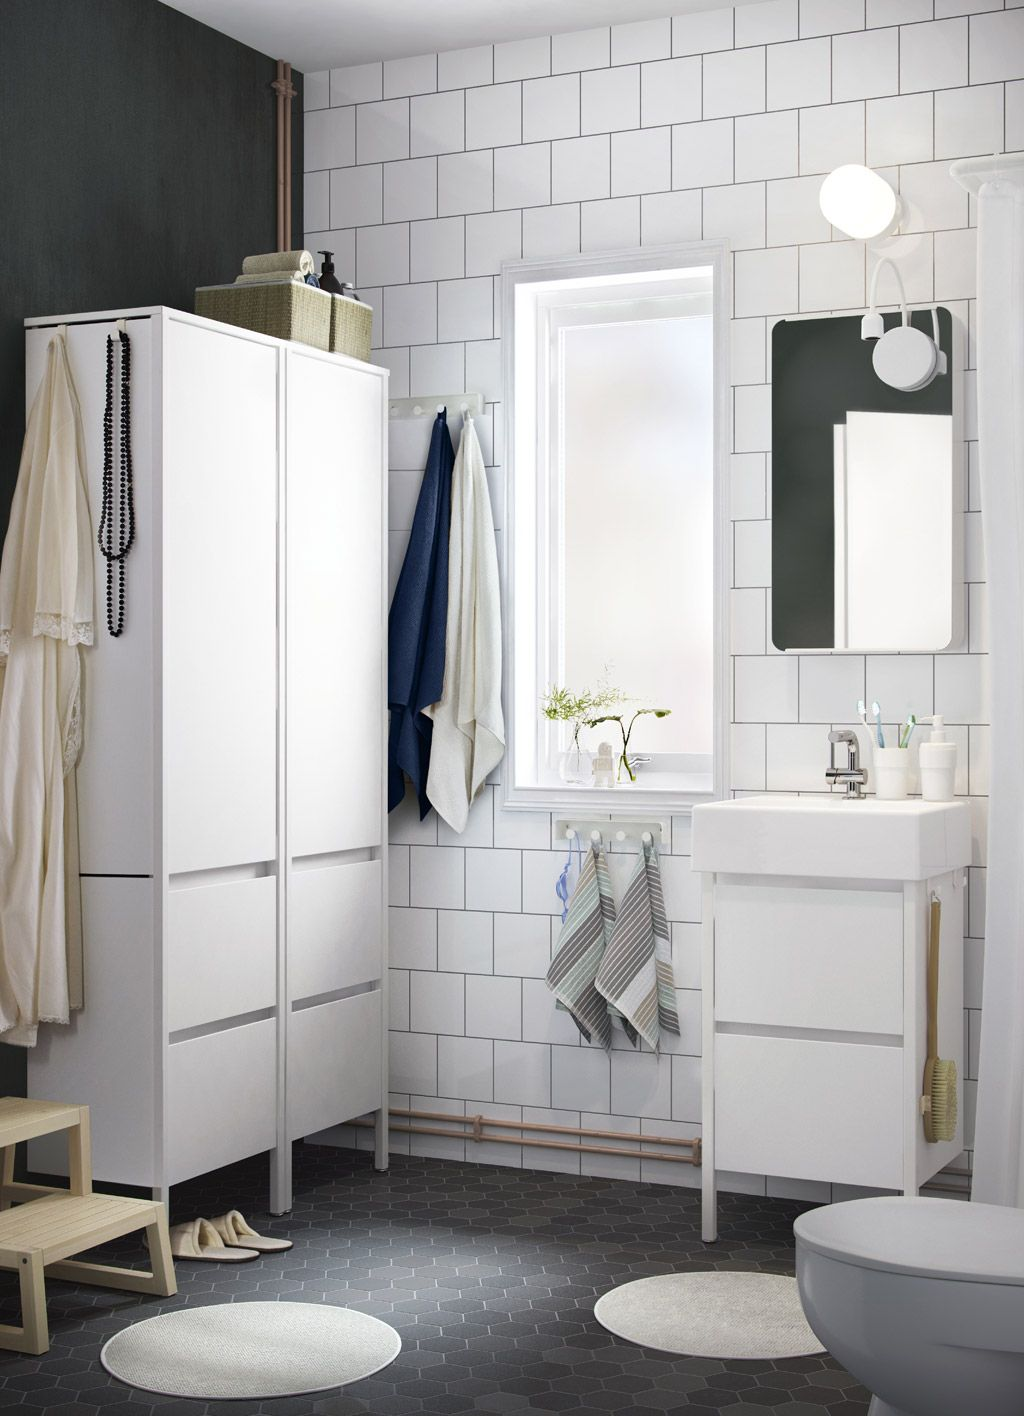 Ikea YDDINGEN sink unit and high cabinets | IKEA inspiratie ...